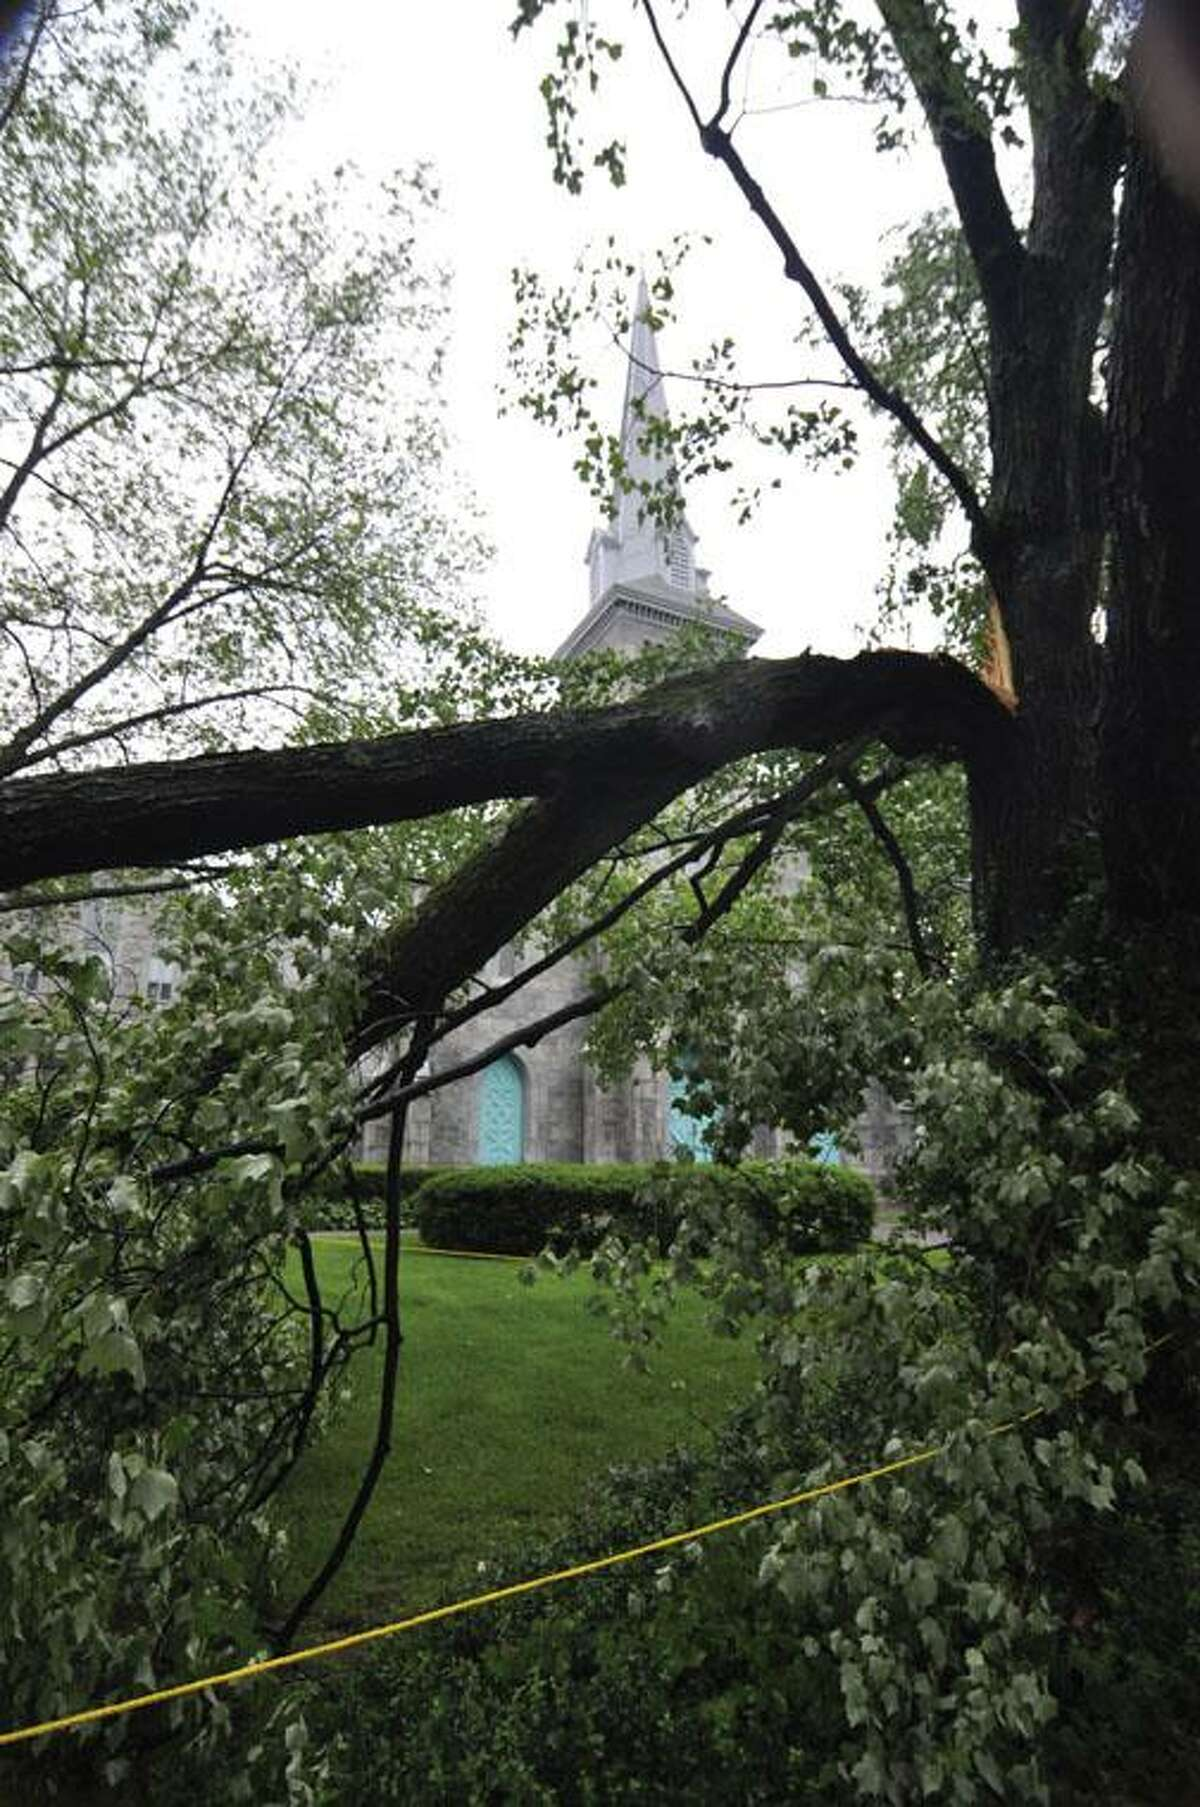 RICK THOMASON / Register CitizenBroken and battered trees sit as a reminder of the fury of Thursday afternoon's storms that blew through Torrington and much of Litchfield County. Two trees were broken on the grounds of Center Congregation Church on Main Street in Torrington.